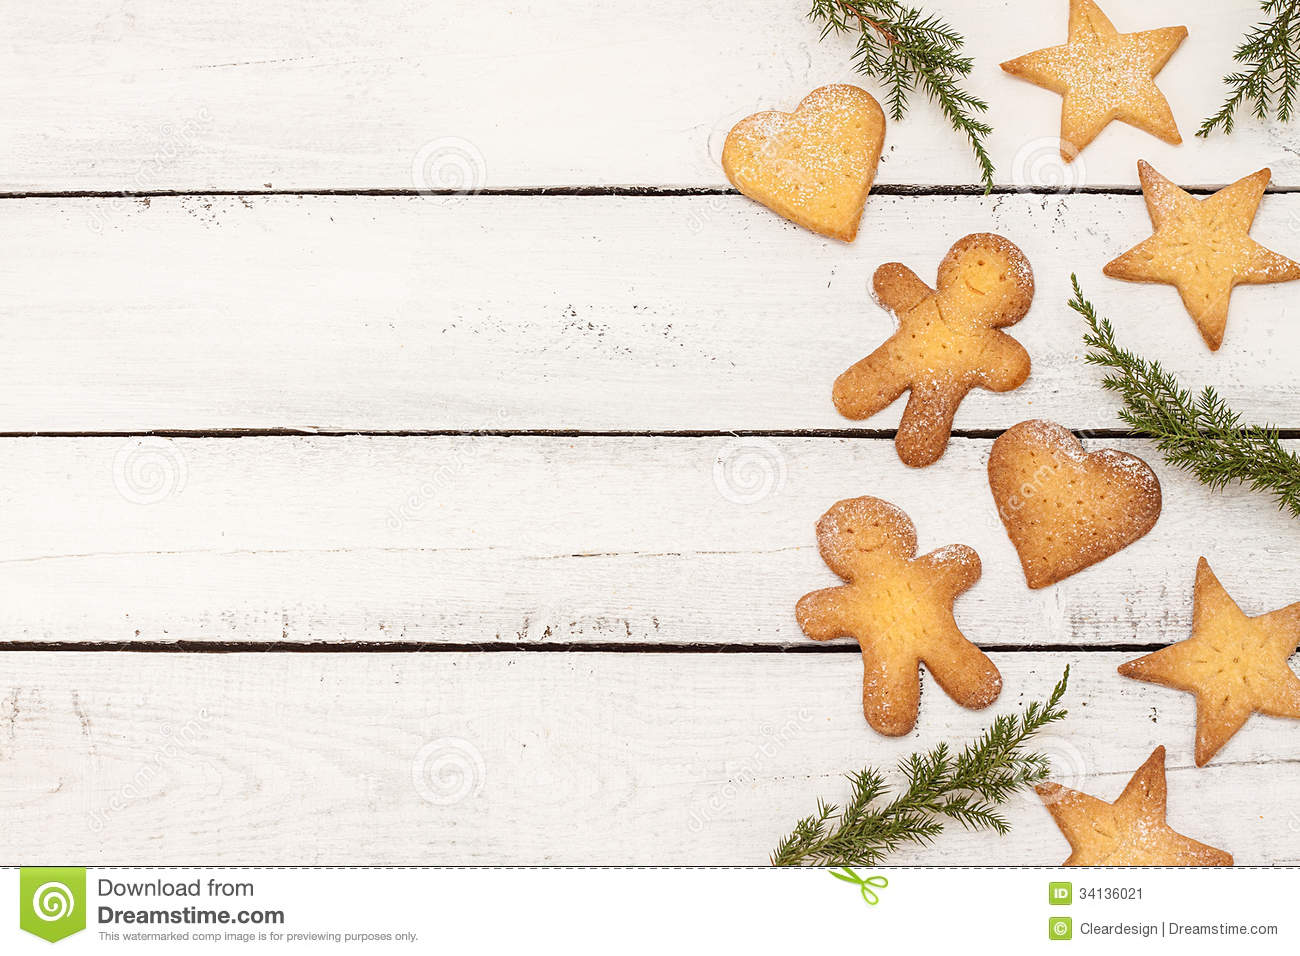 christmas baking background with - photo #41